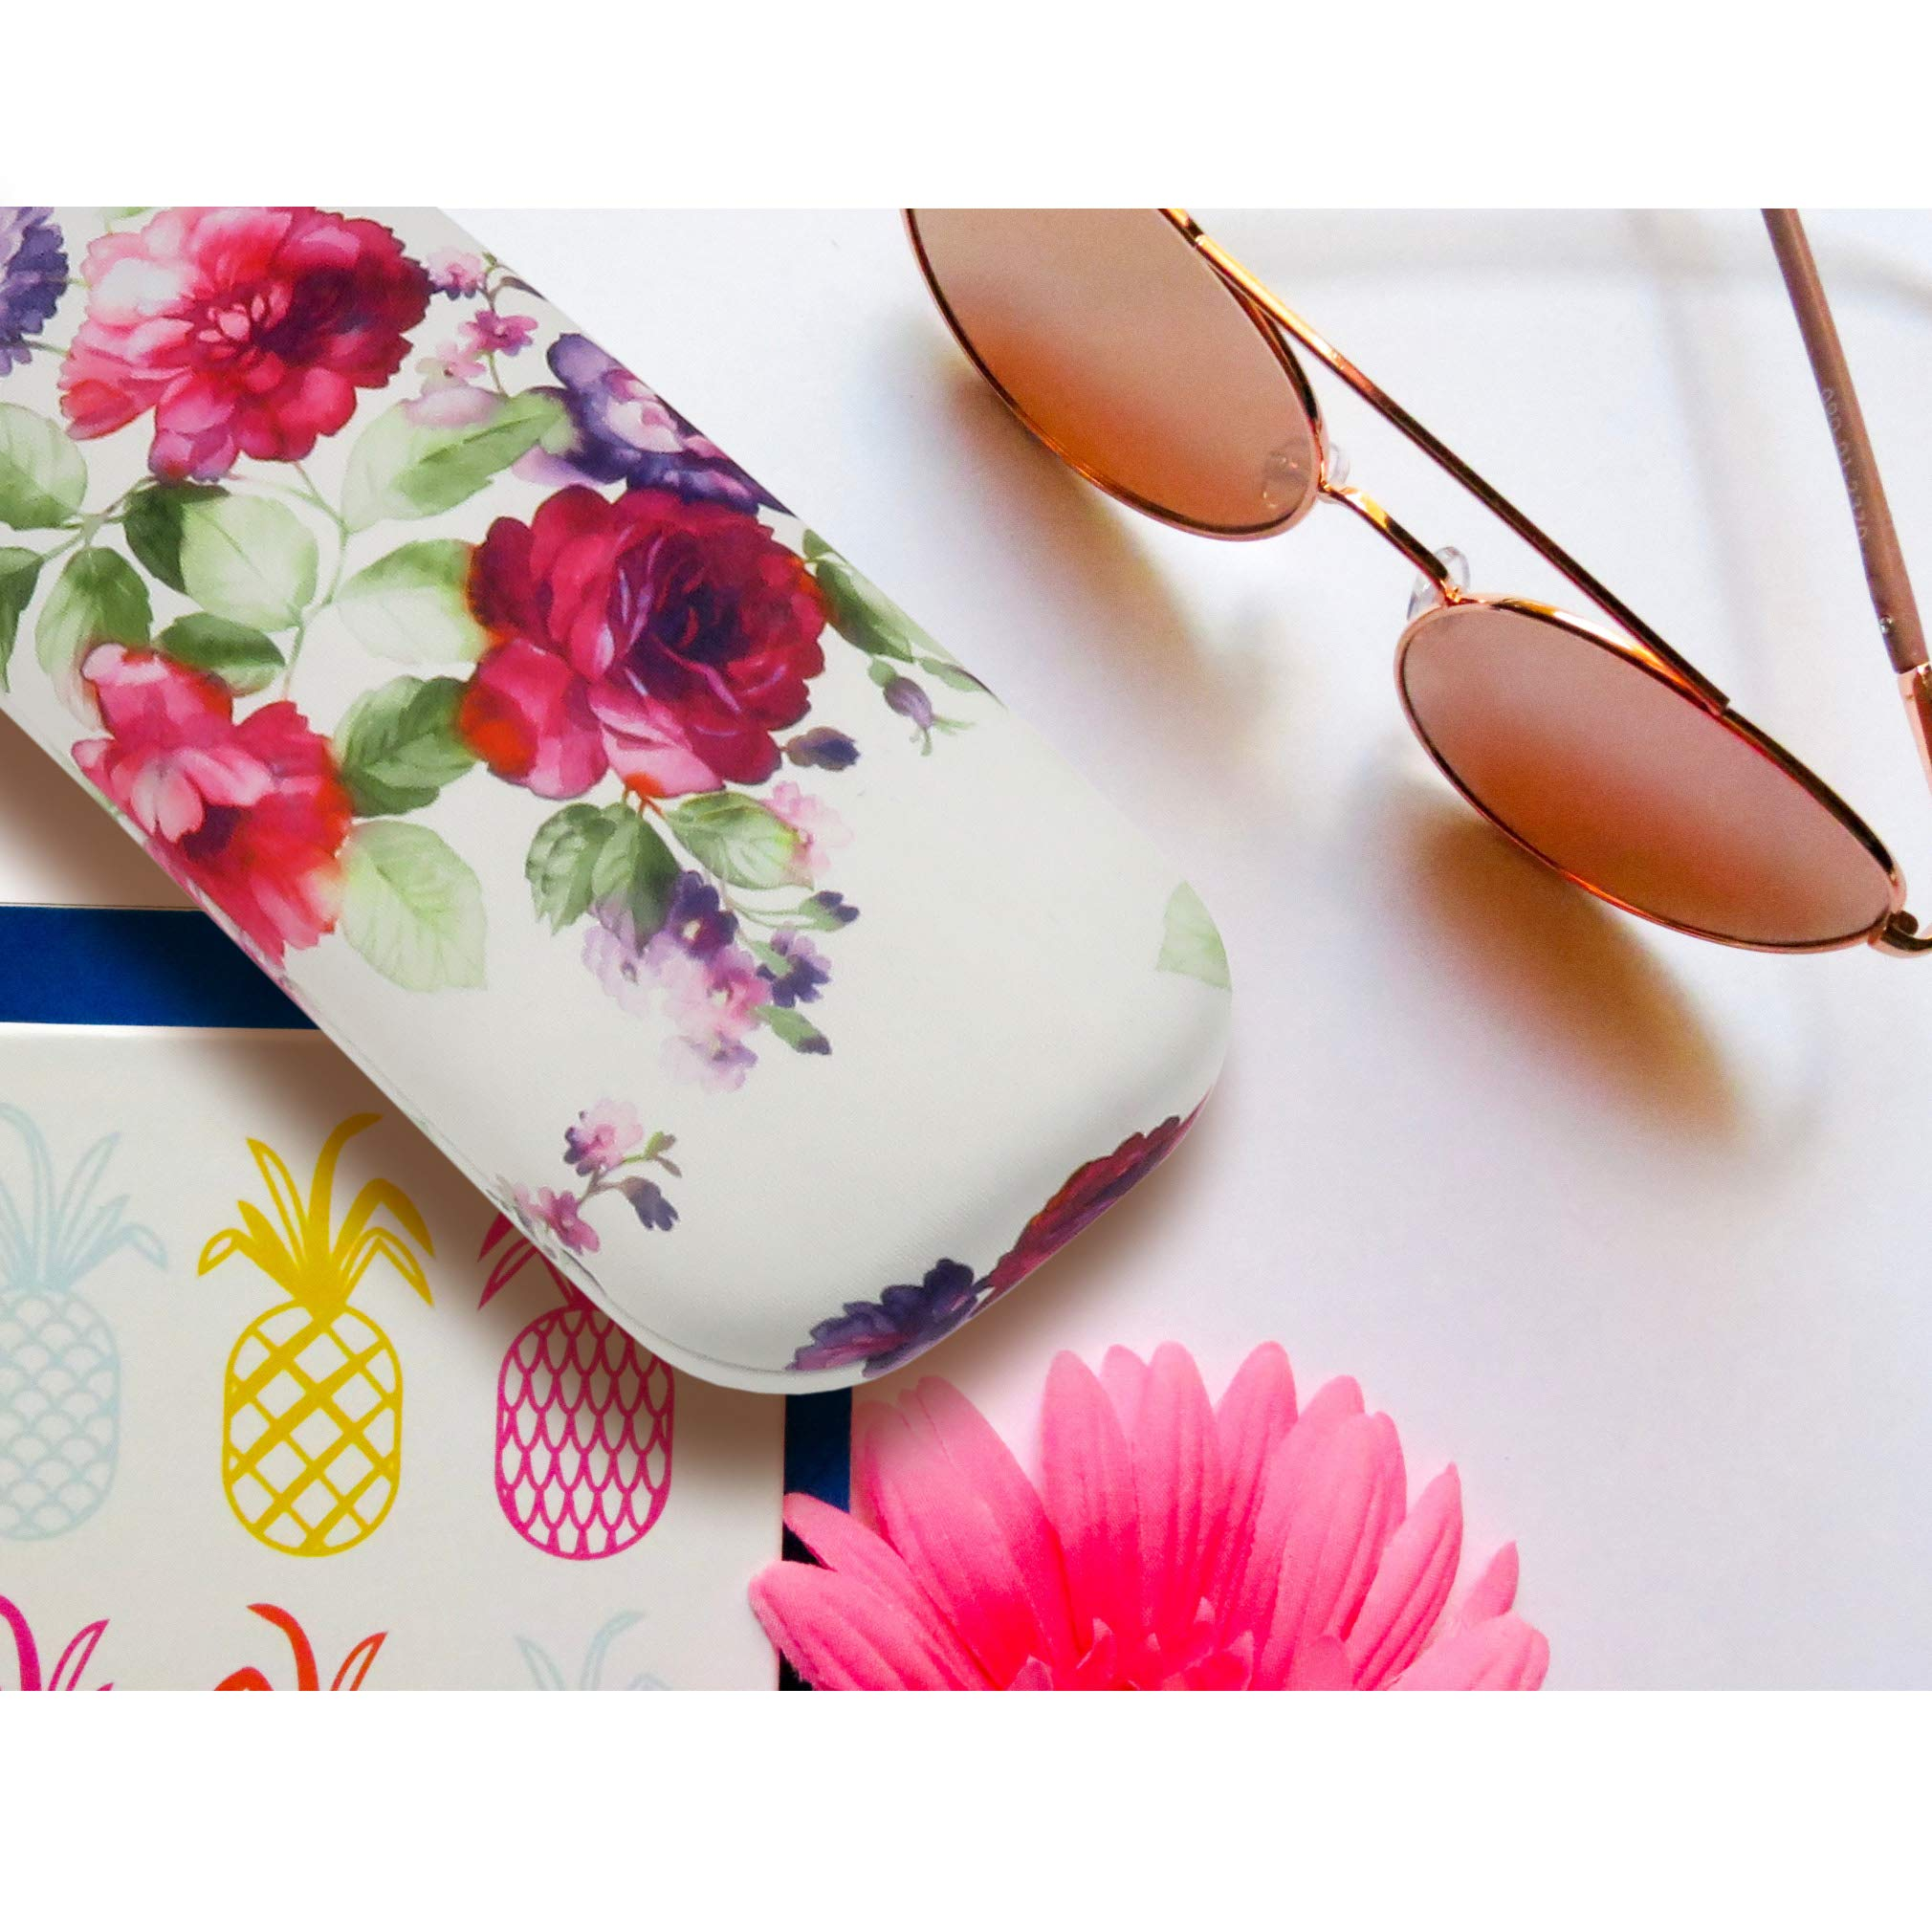 Floral Hard Shell Eyeglass Case for women Medium Sunglasses case with Cleaning Cloth by Rachel Rowberry (AS126 Cranberry Rose) by MyEyeglassCase (Image #3)